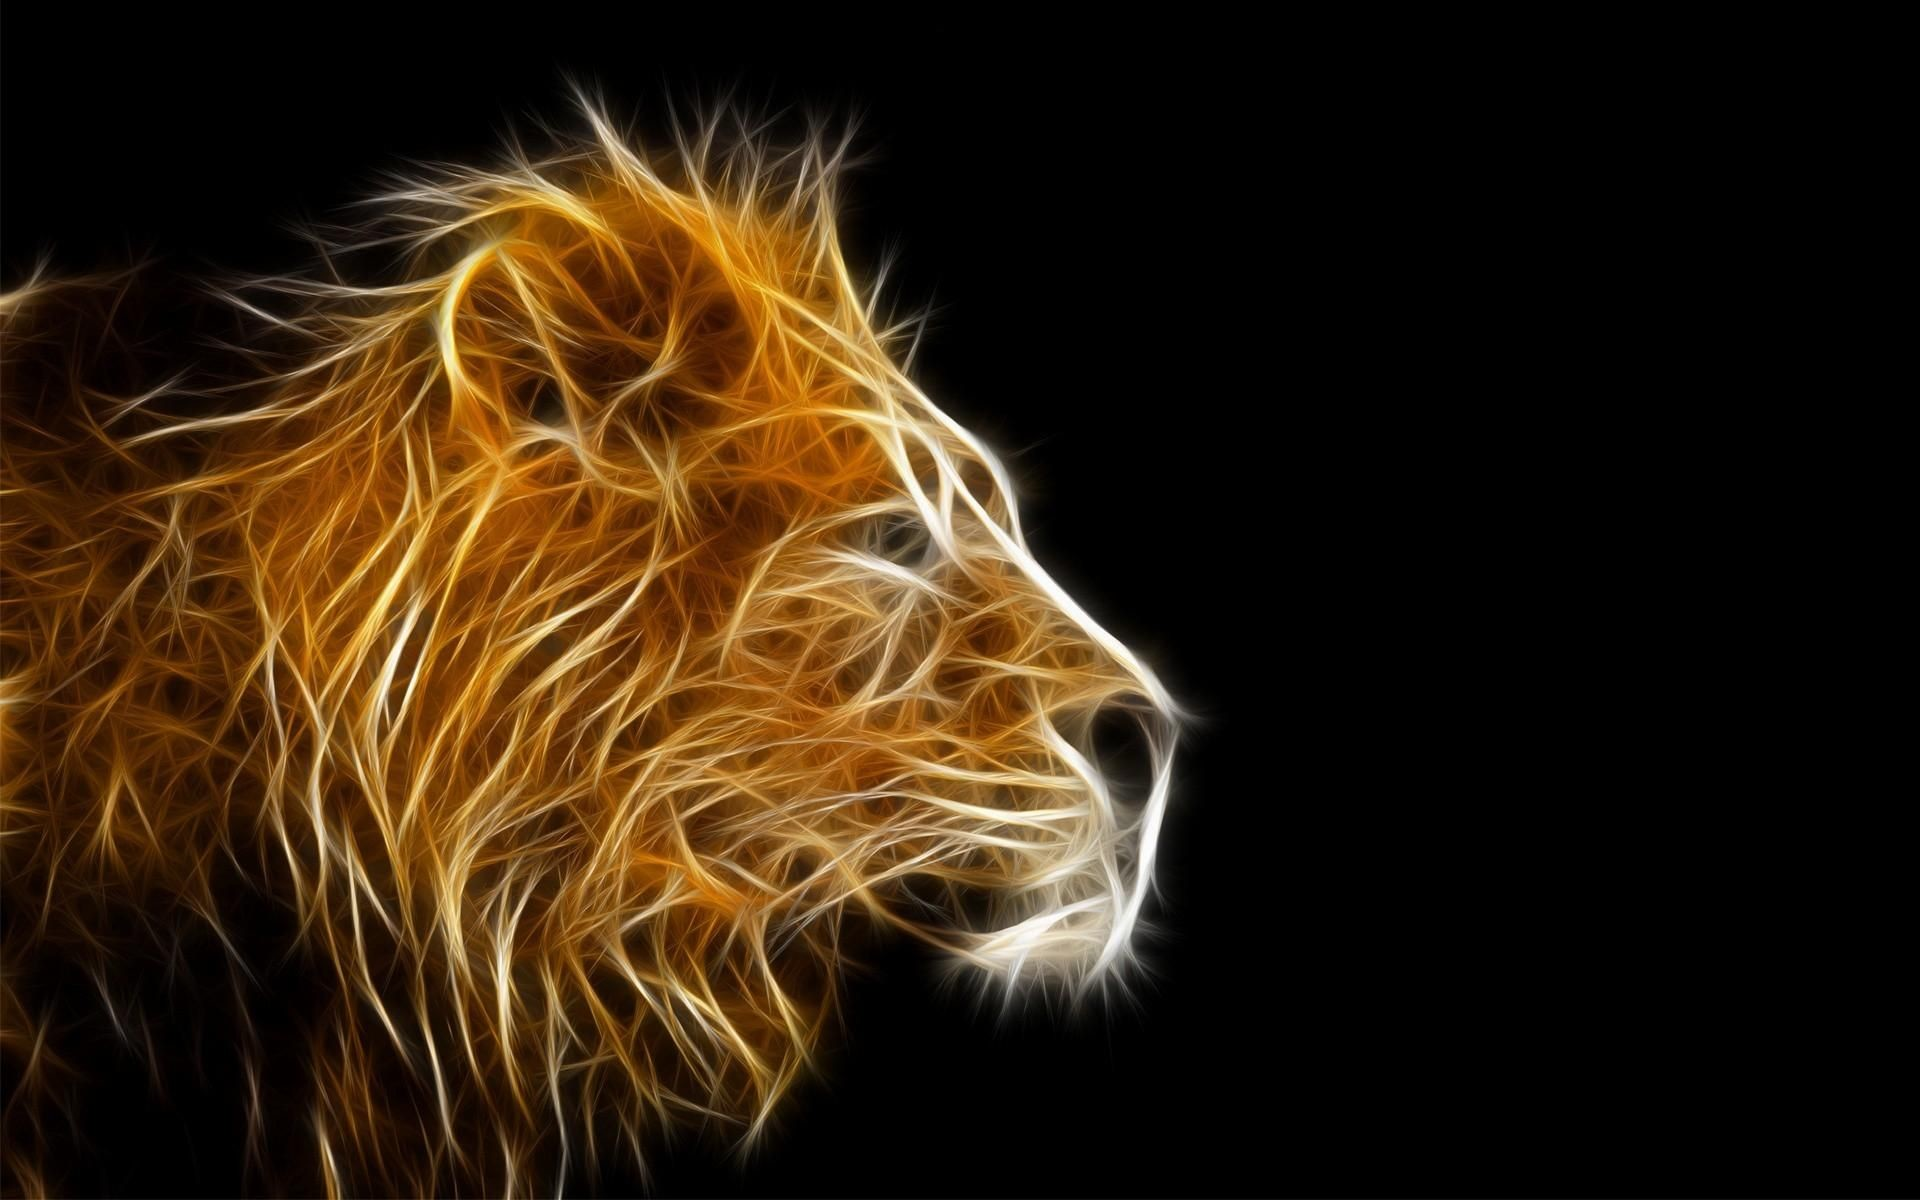 Res: 1920x1200, Black And White Lion Wallpaper Wallpapers) – Art Wallpapers